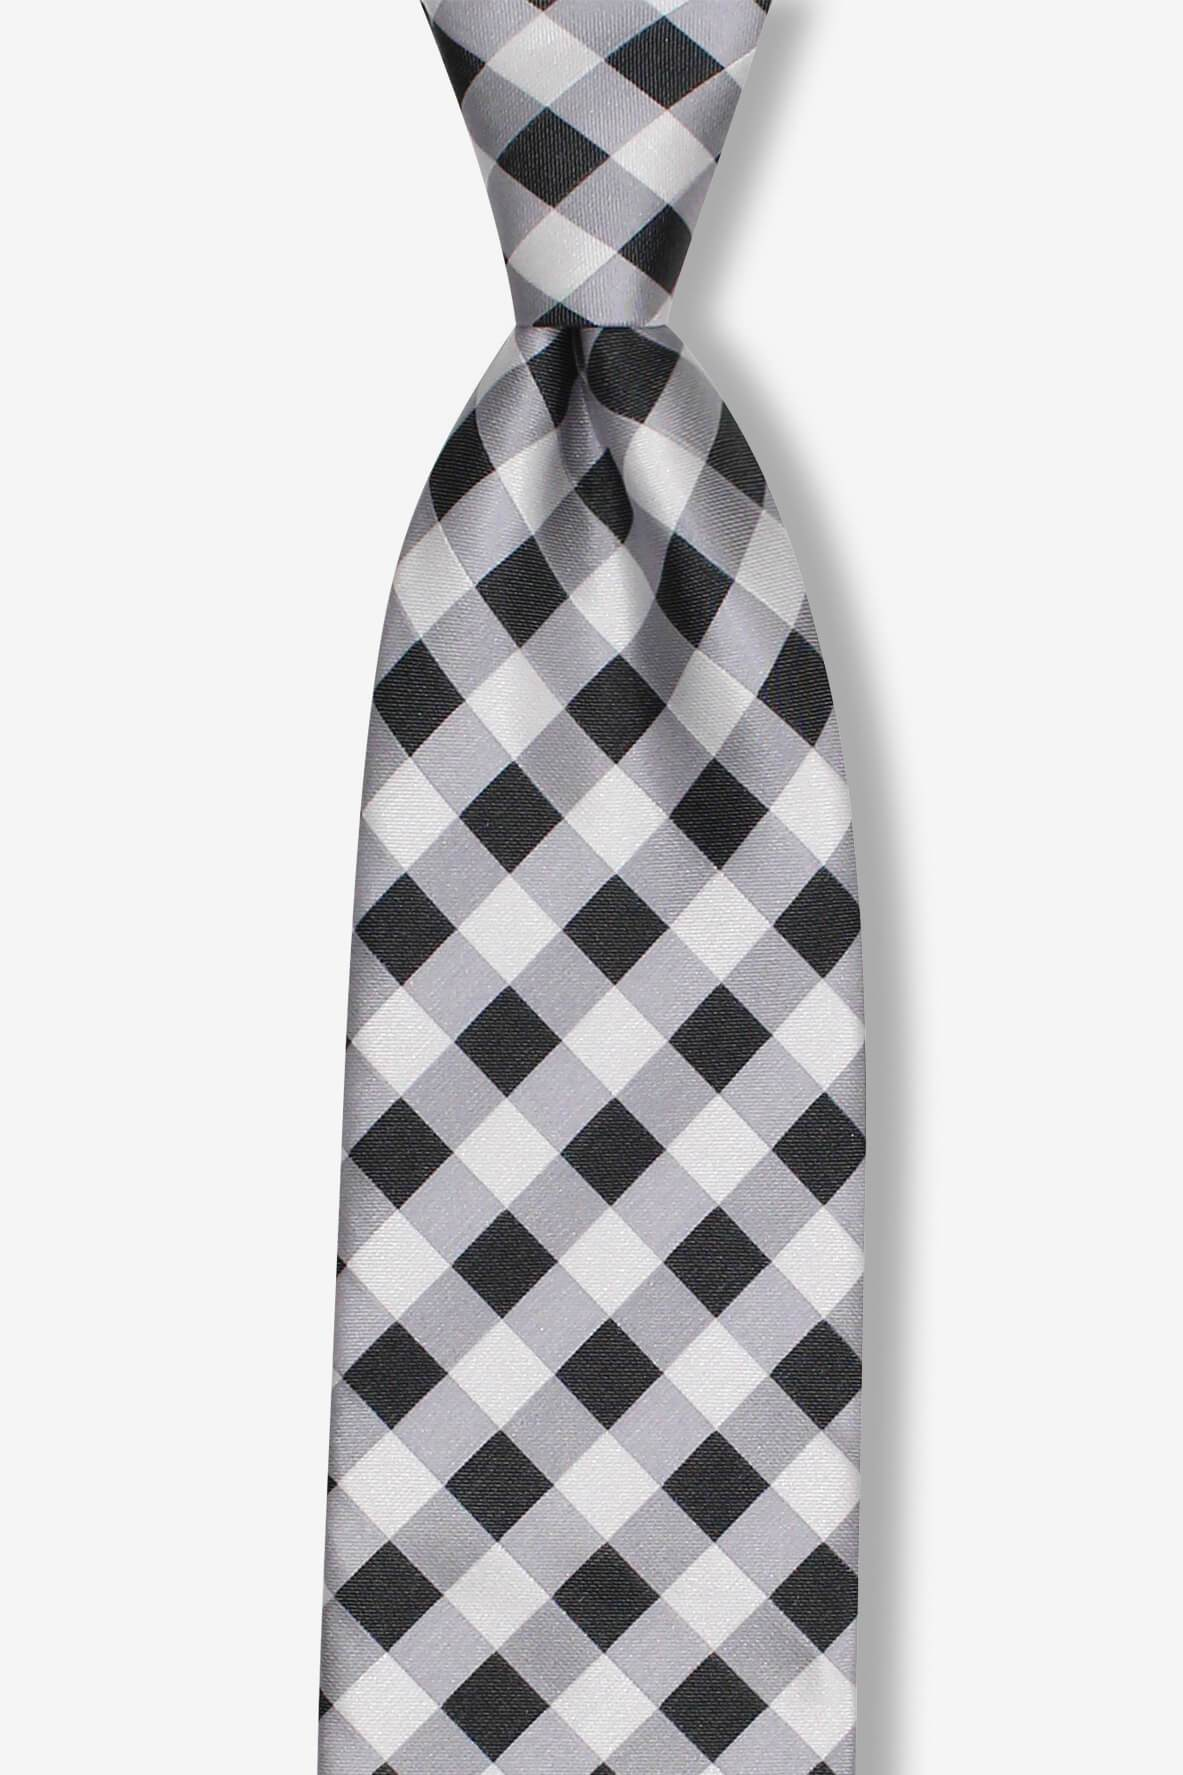 Black and White Picnic Patterned Pre-tied Tie, Tie, GoTie